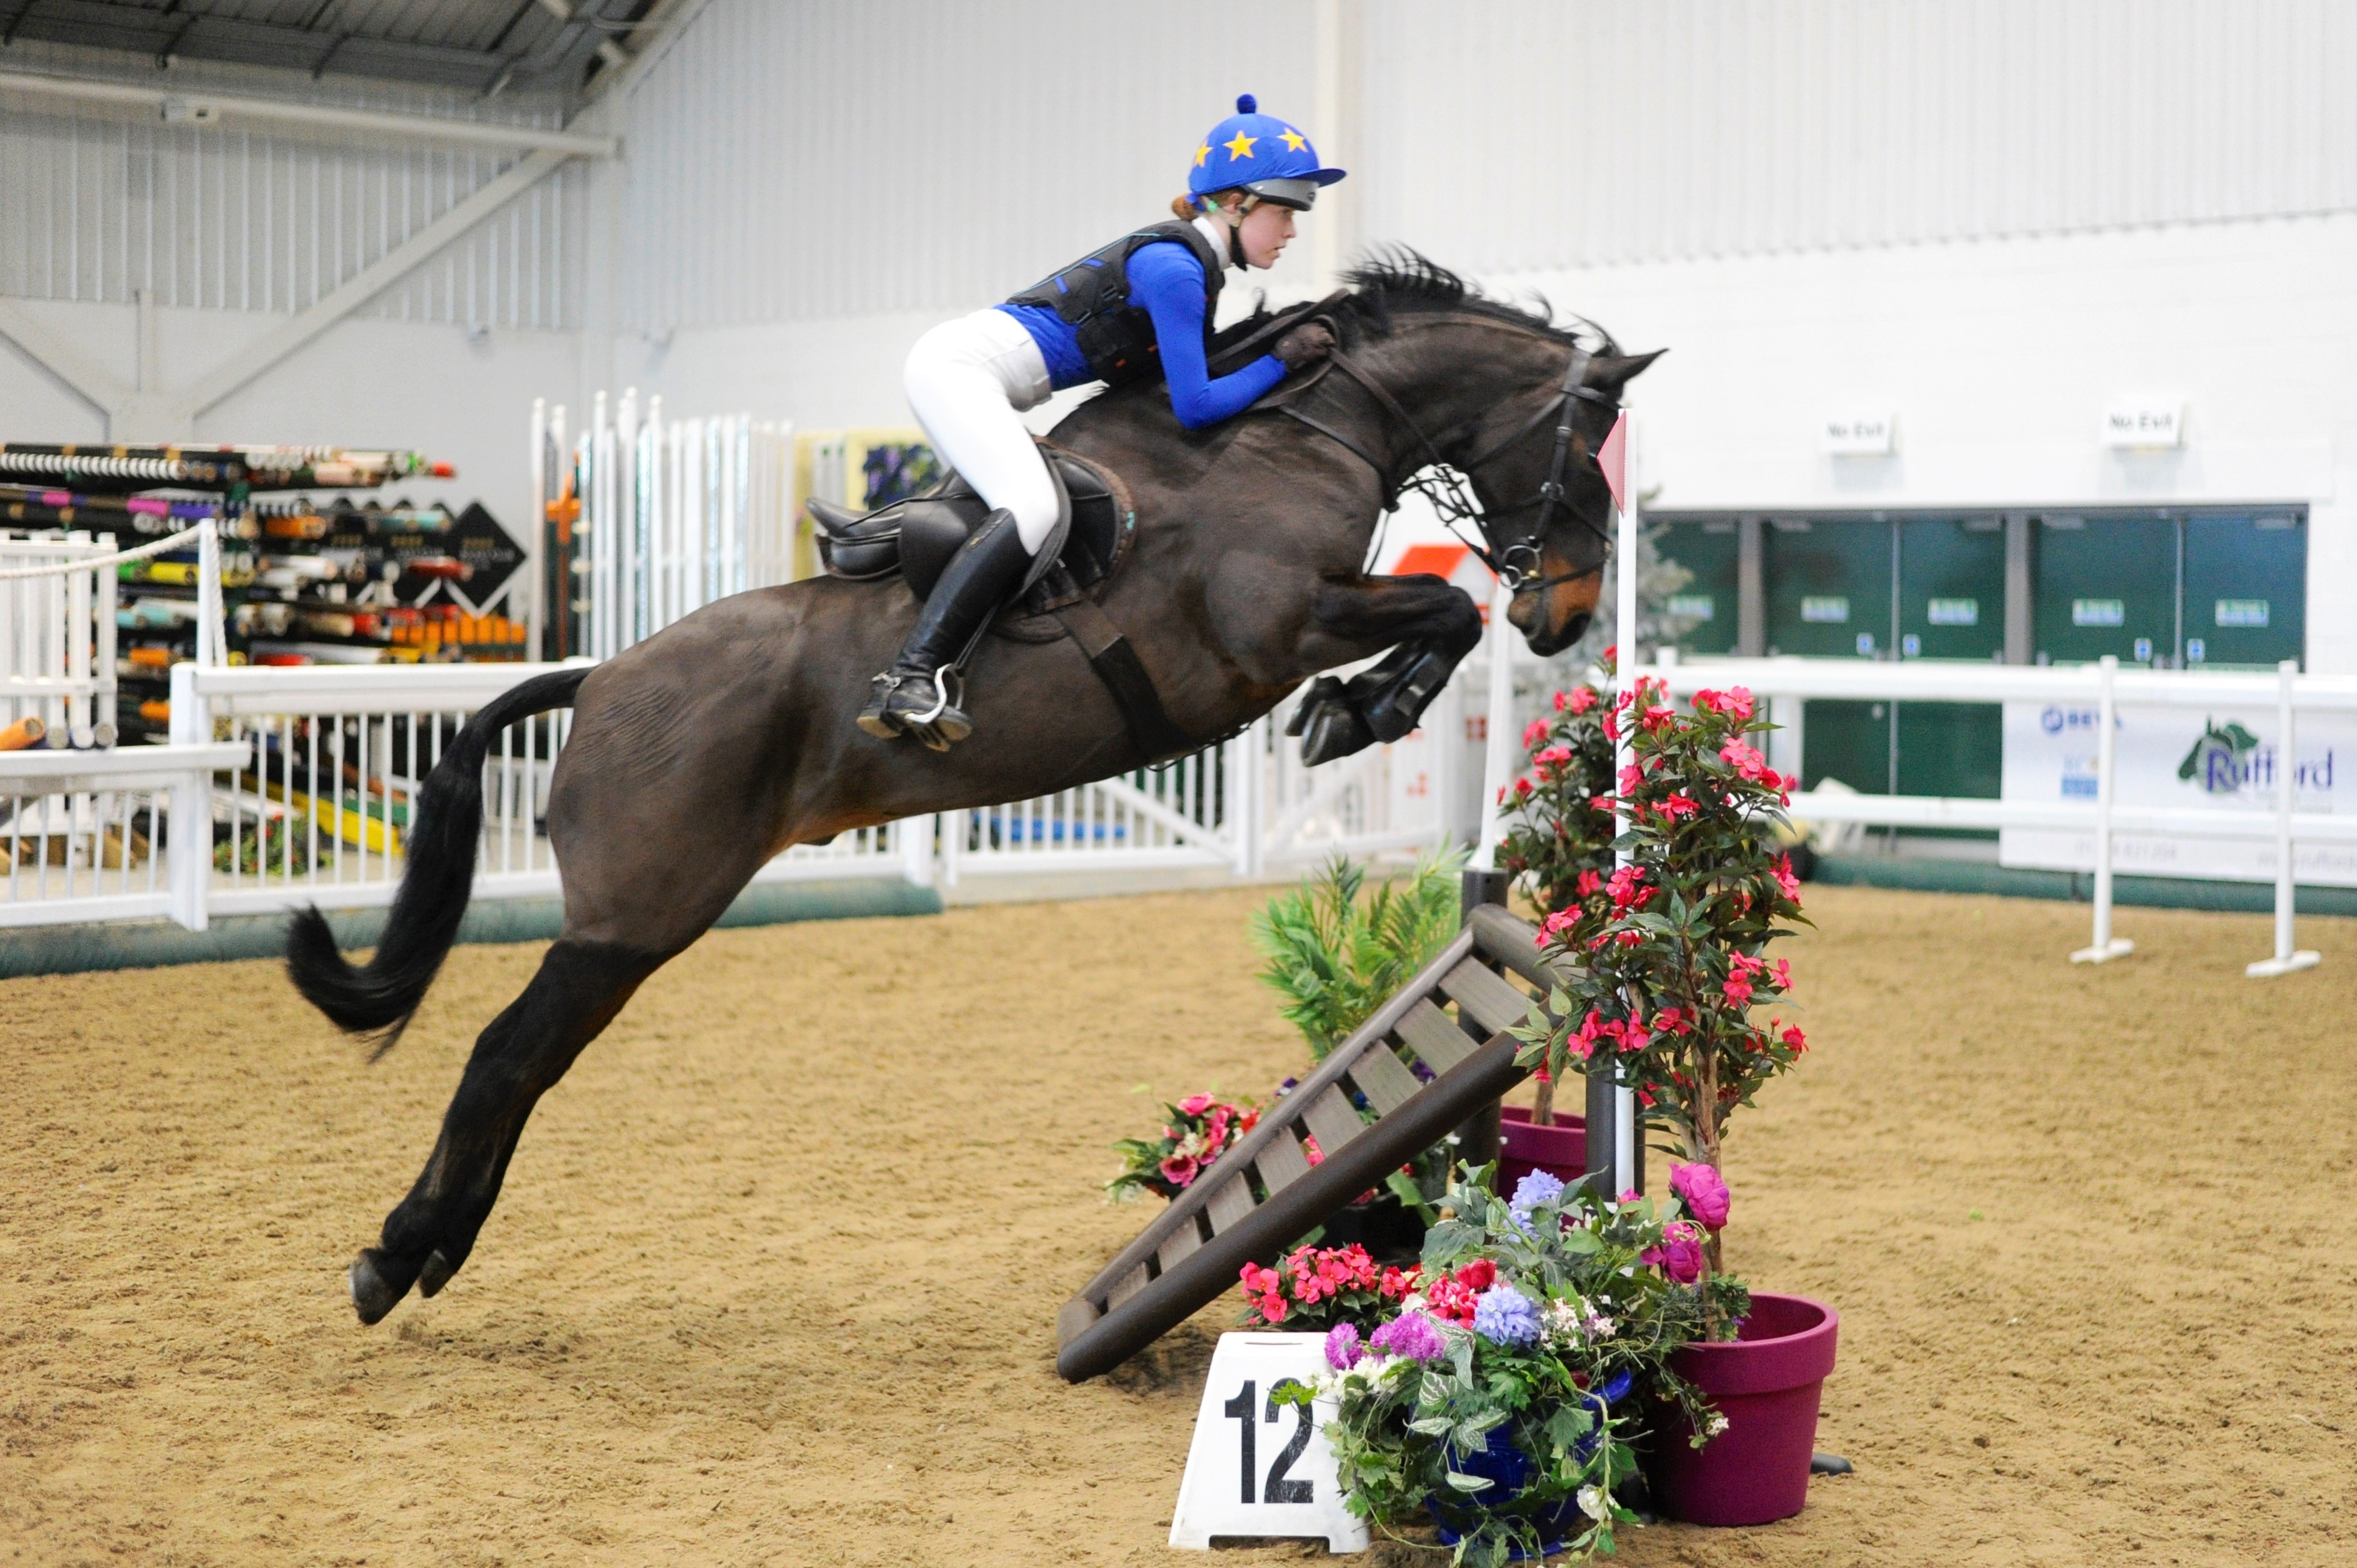 Arena Eventing 11th February 2018 Aintree